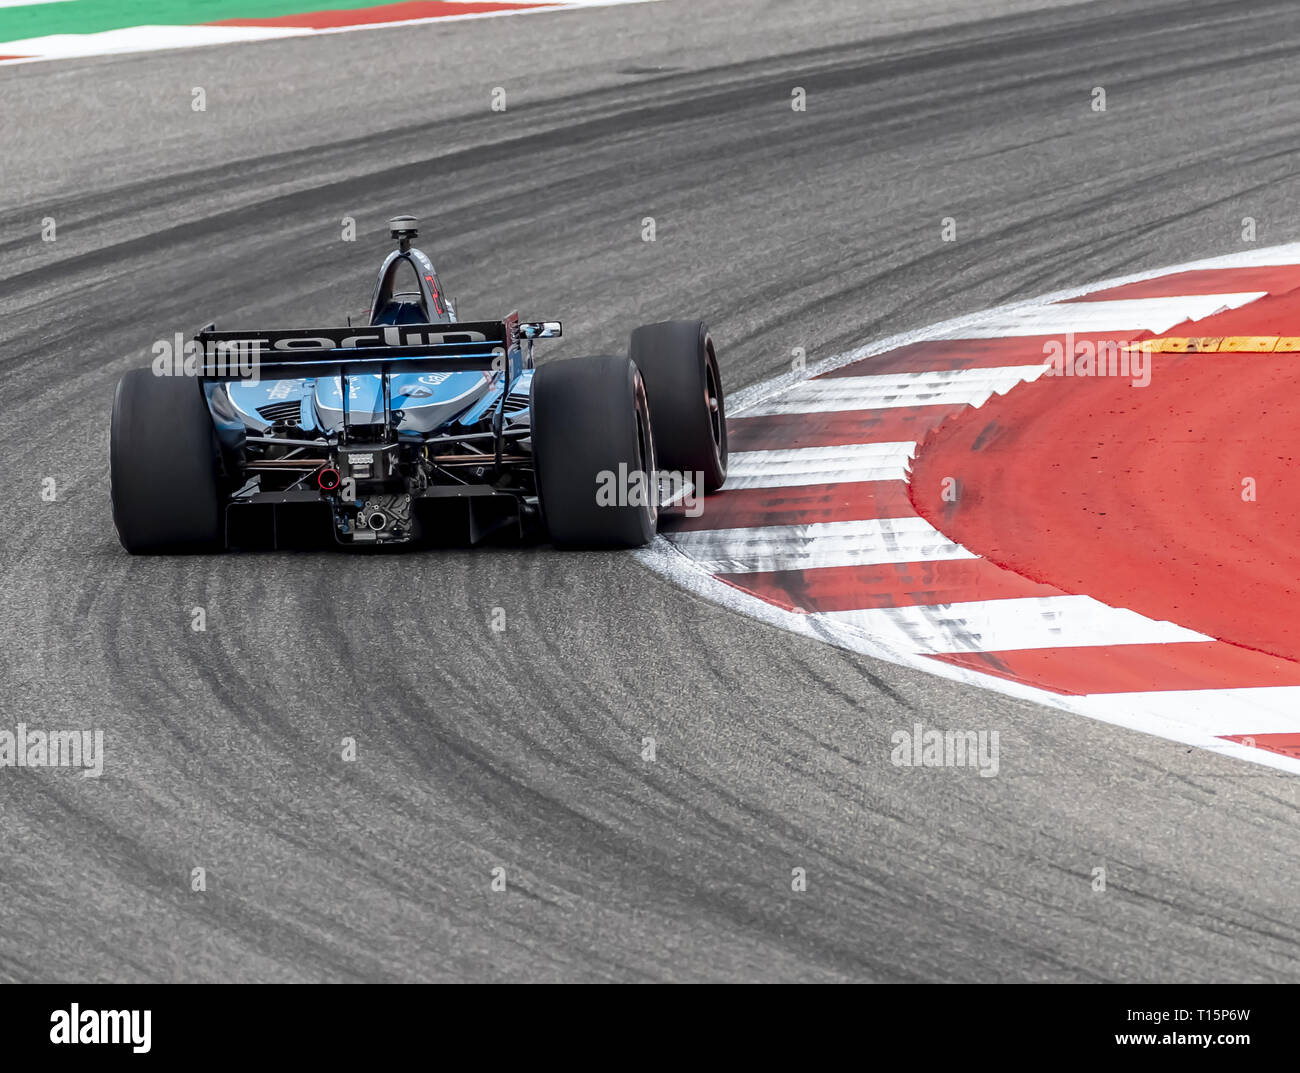 March 23, 2019 - Austin, Texas, U.S. - MAX CHILTON (59) of England goes through the turns during practice for the INDYCAR Classic at Circuit Of The Americas in Austin, Texas. (Credit Image: © Walter G Arce Sr Asp Inc/ASP) - Stock Image